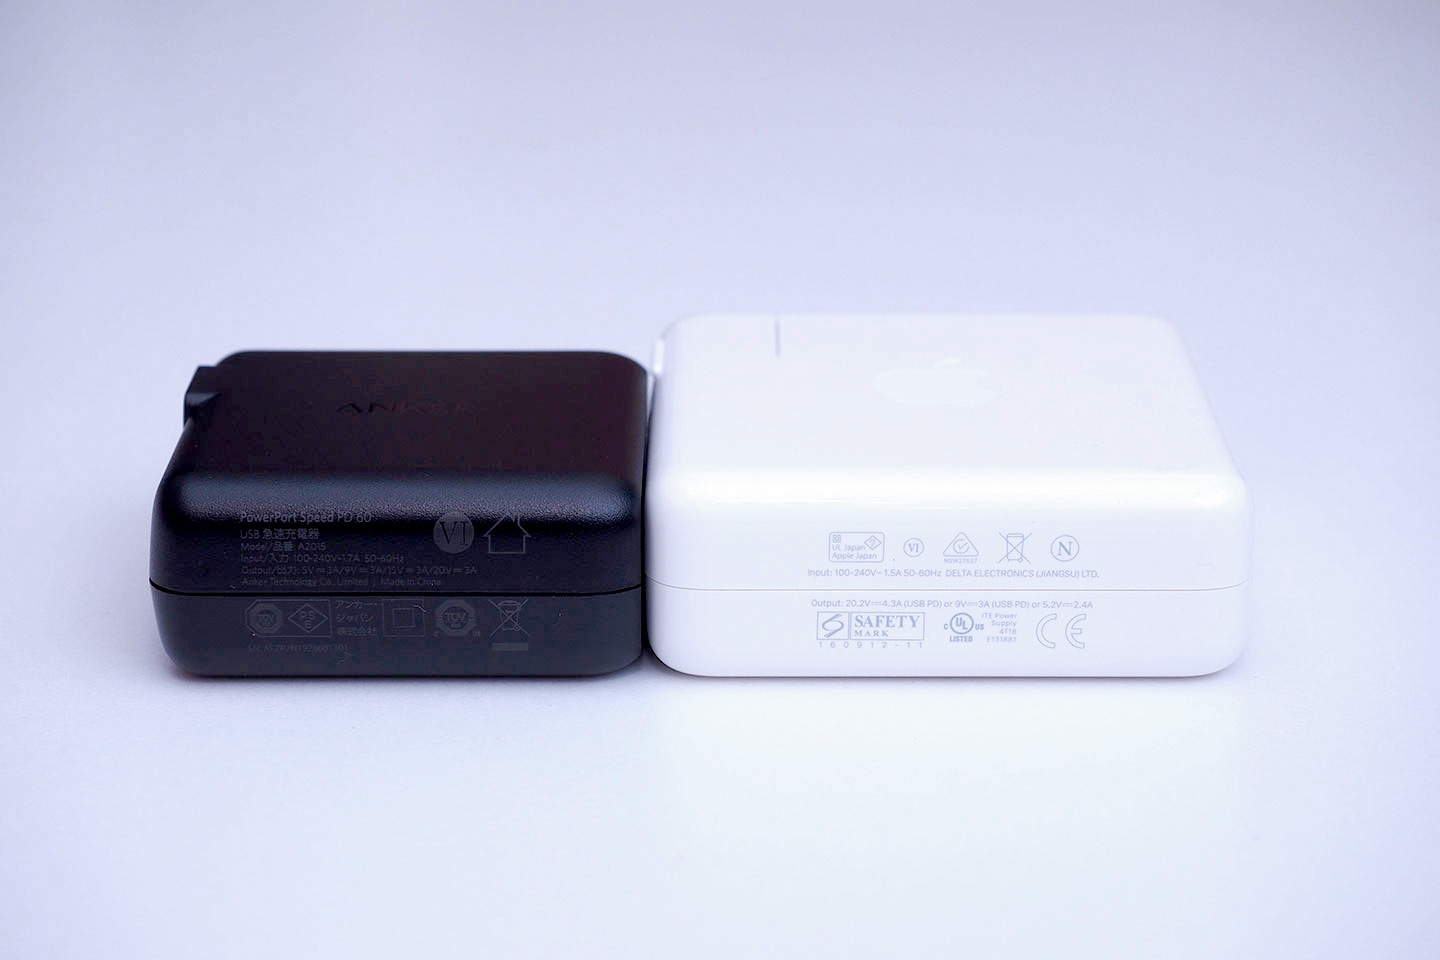 Anker_PowerPort_Speed_1_PD_60_Apple87Wと比較2